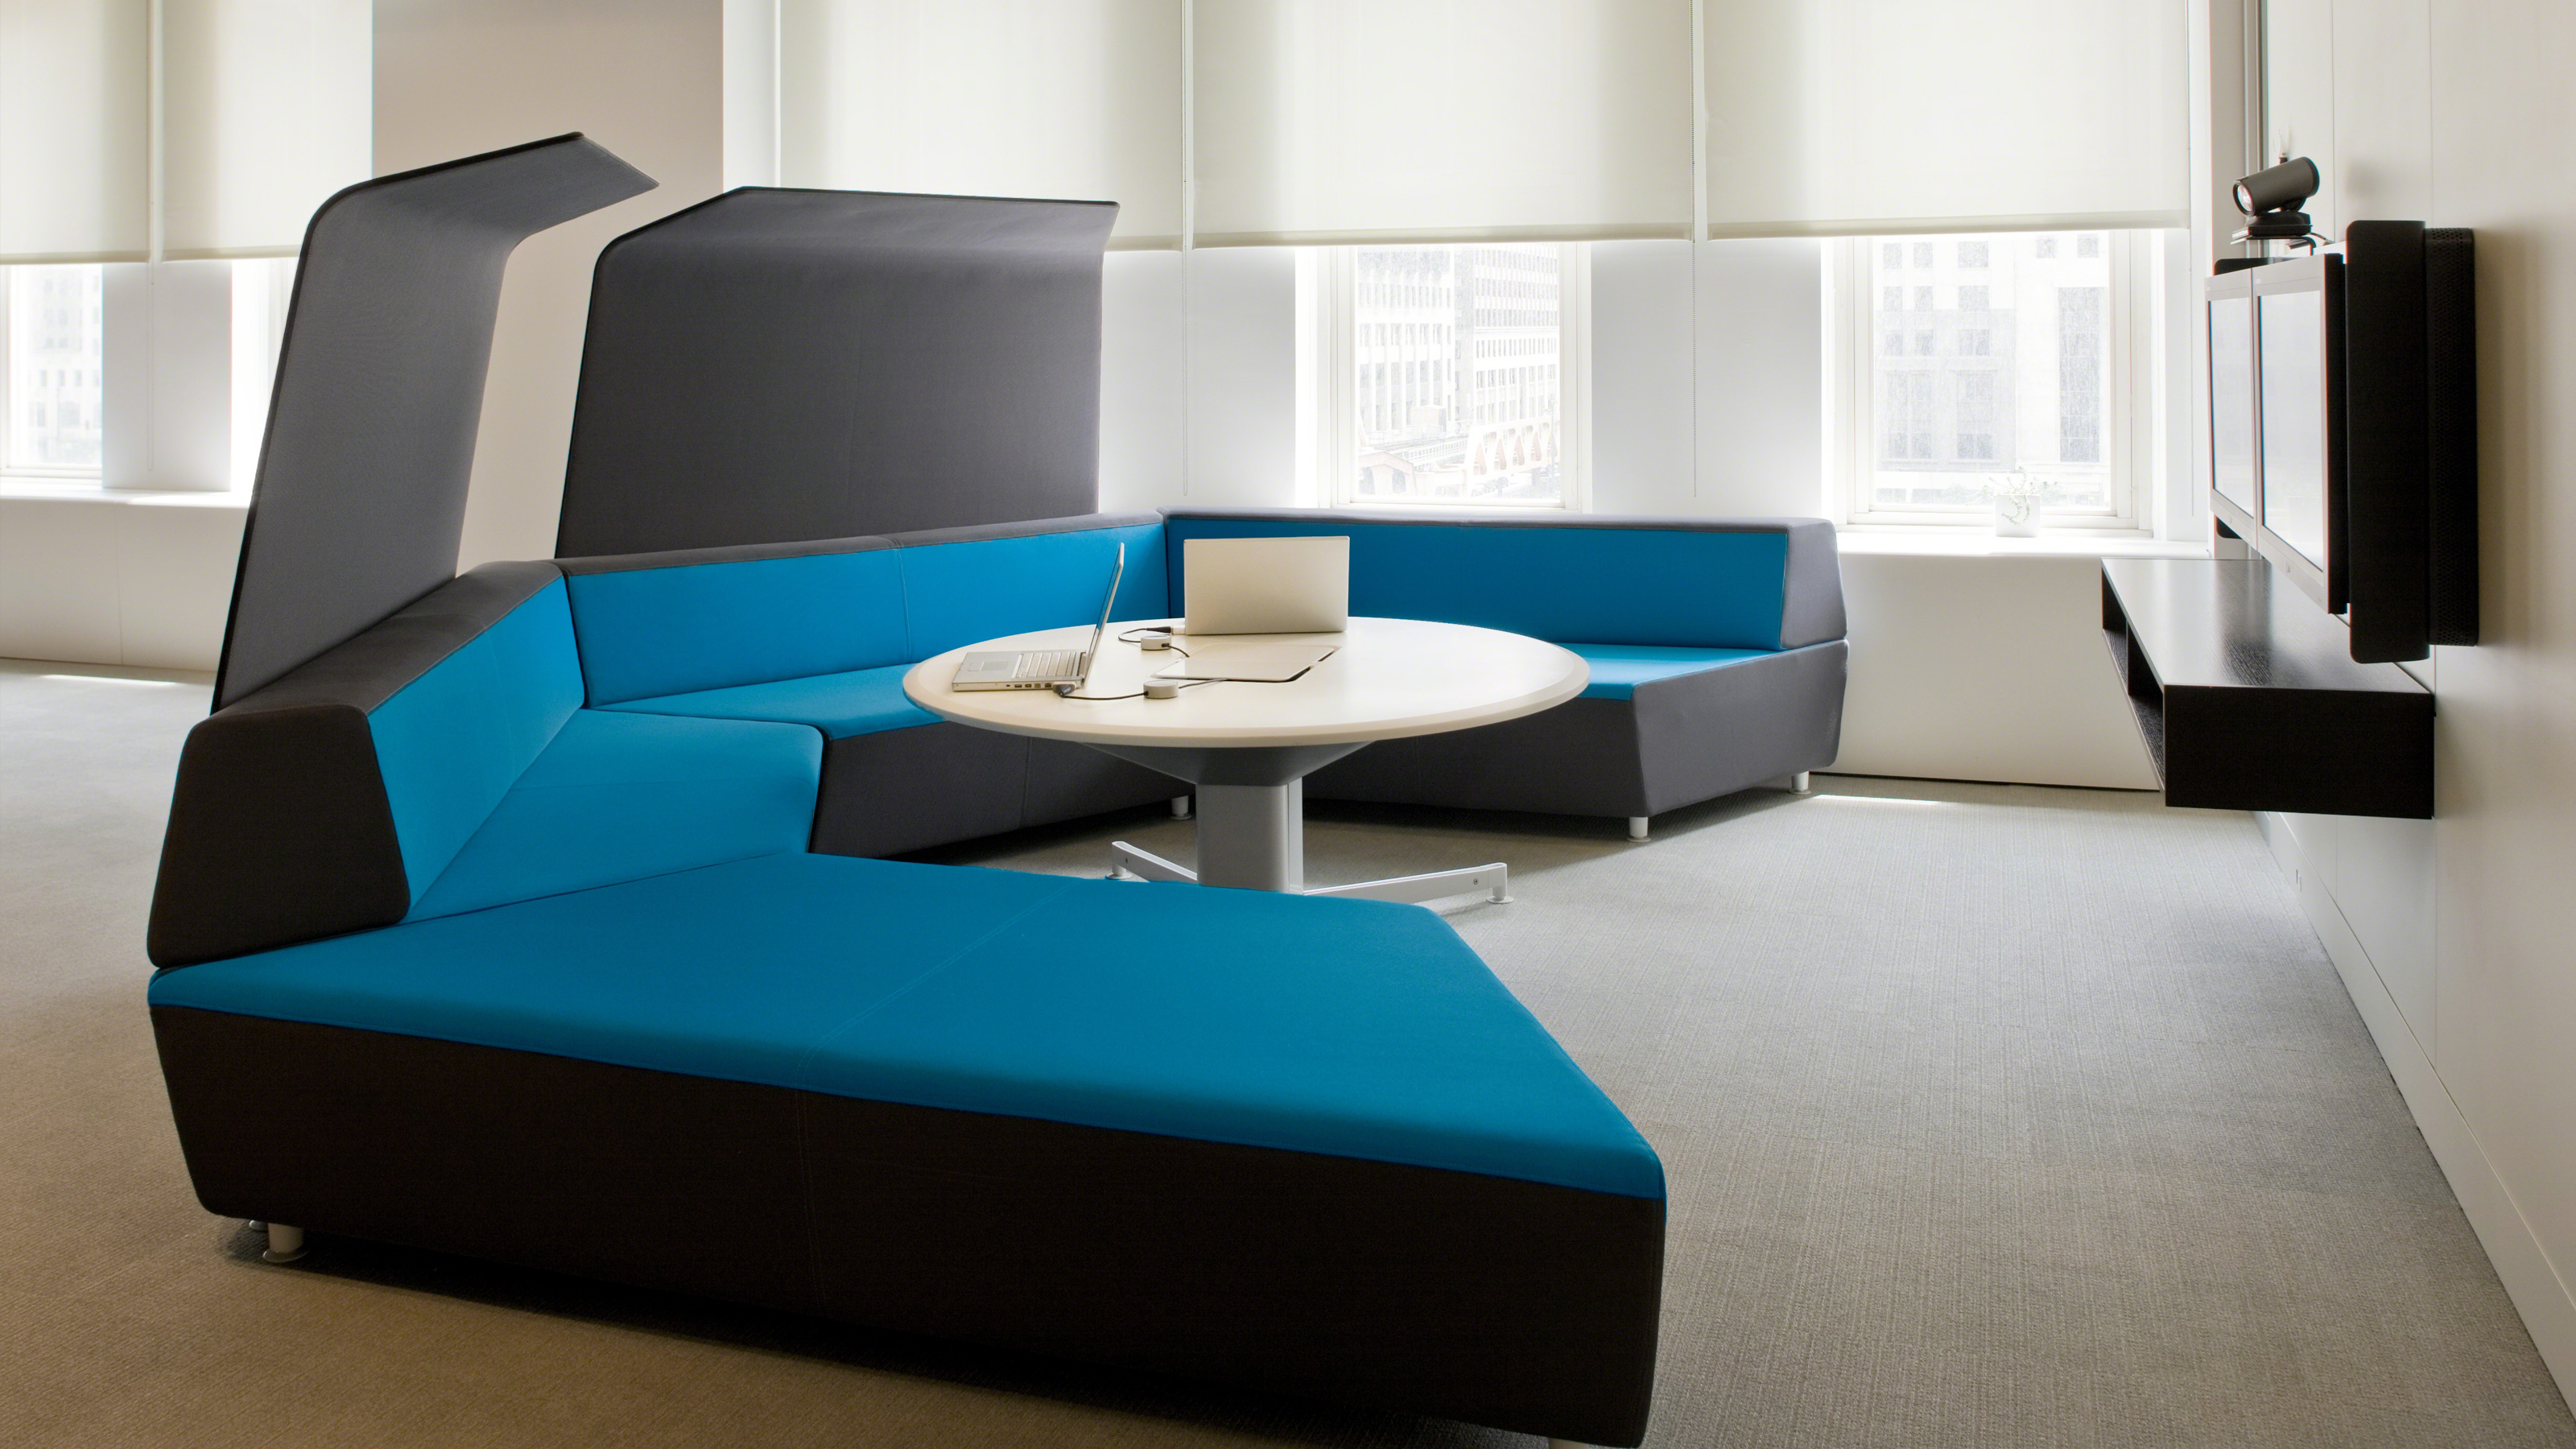 three sixty round sofa lounger most comfortable bed 2017 media scape lounge seating and office furnishings steelcase